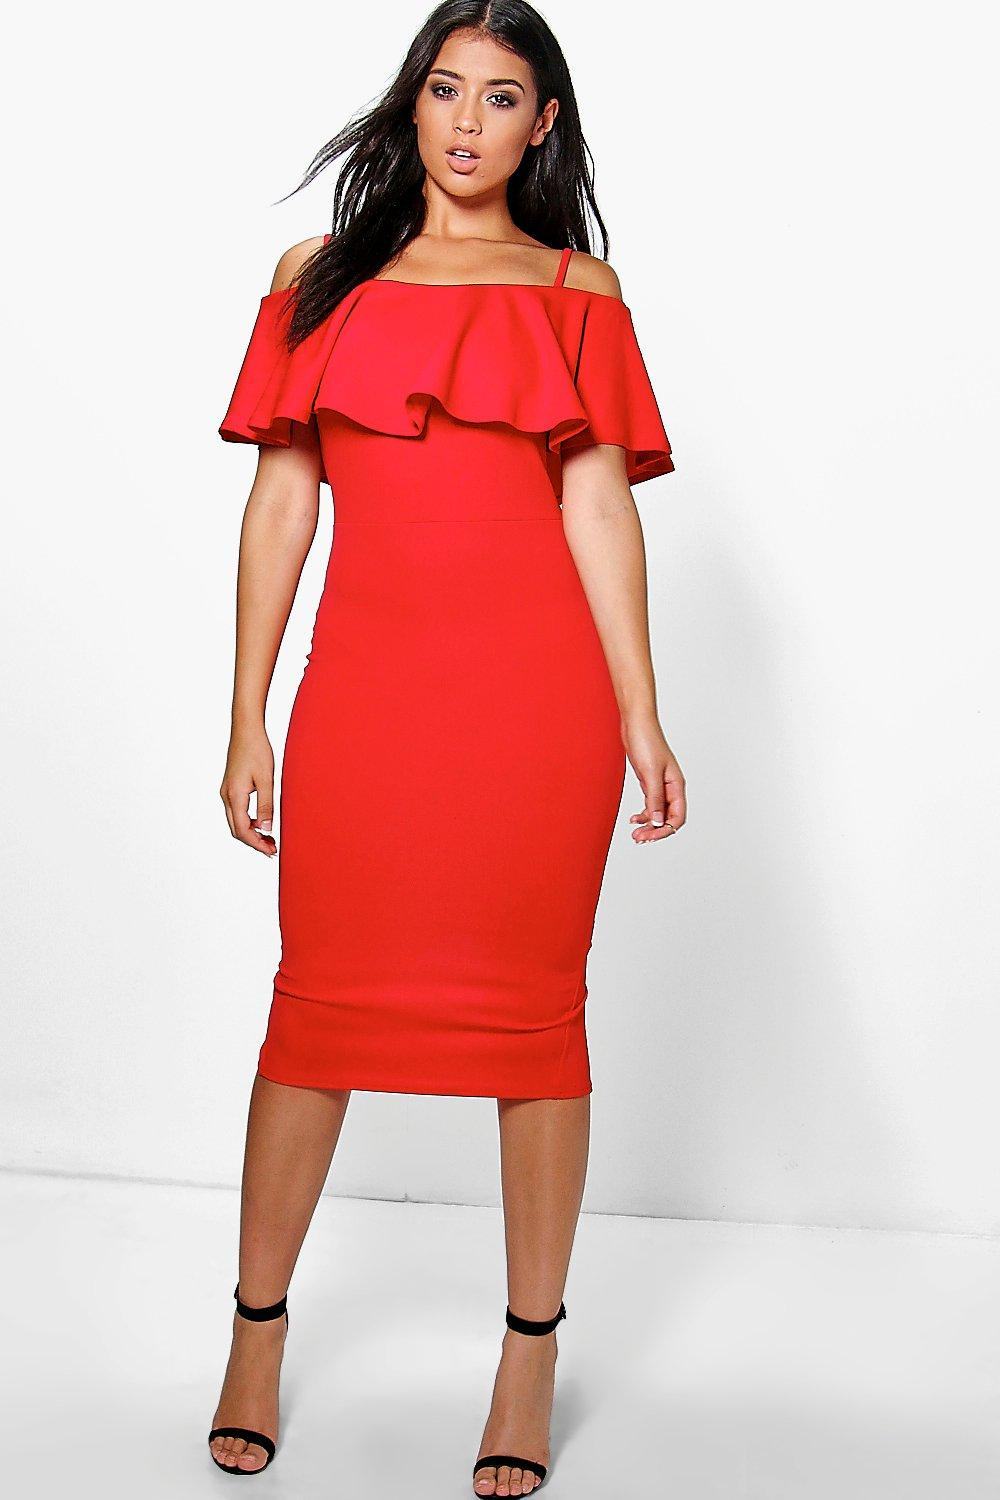 7173a4672141 Strappy Off Shoulder Midi Bodycon Dress. Hover to zoom